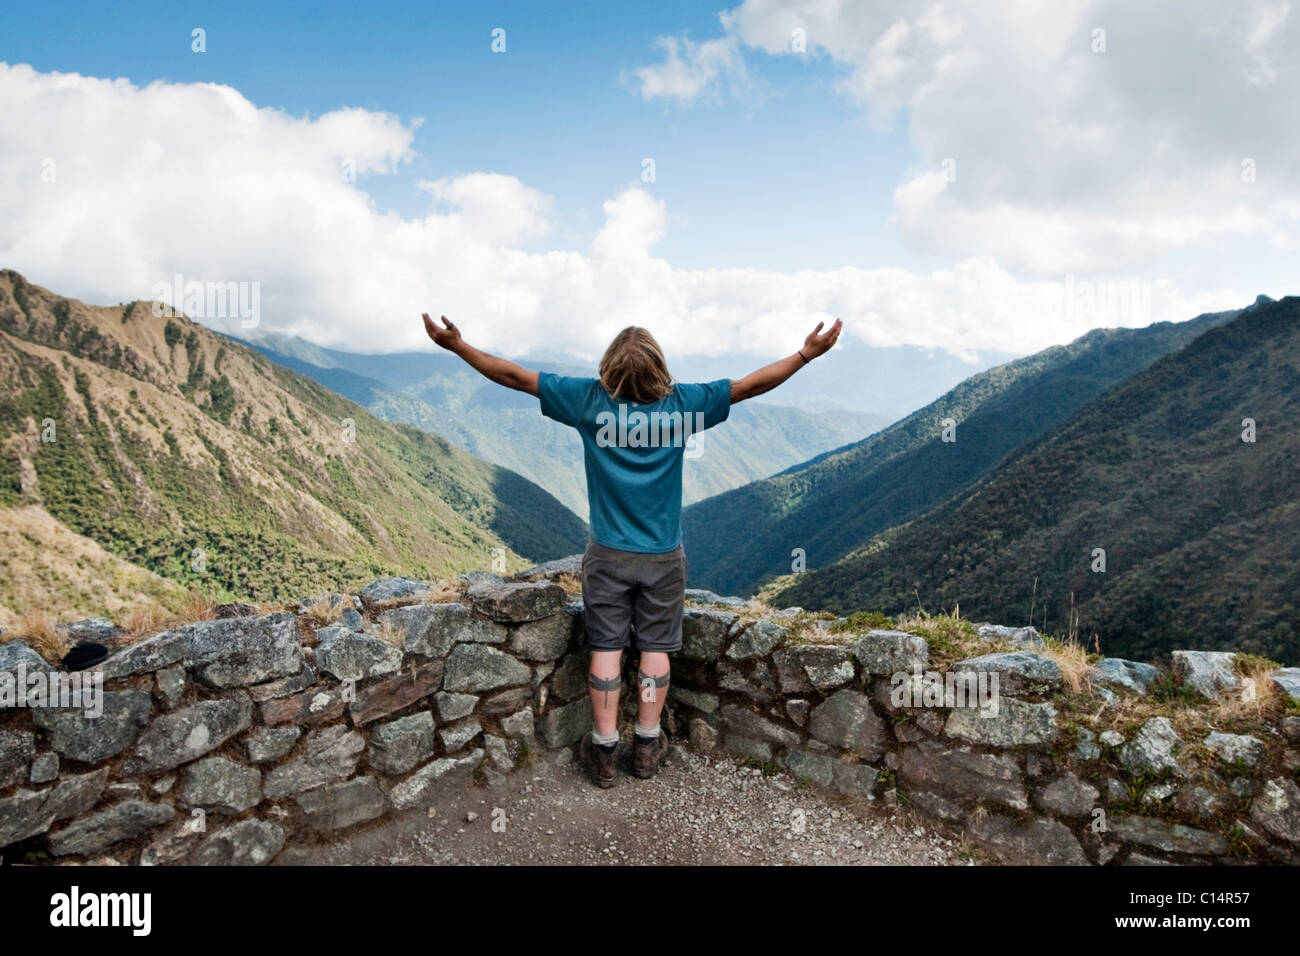 A young man spreads his arms to take in the scenery in the Andes mountains along the Inca Trail. - Stock Image